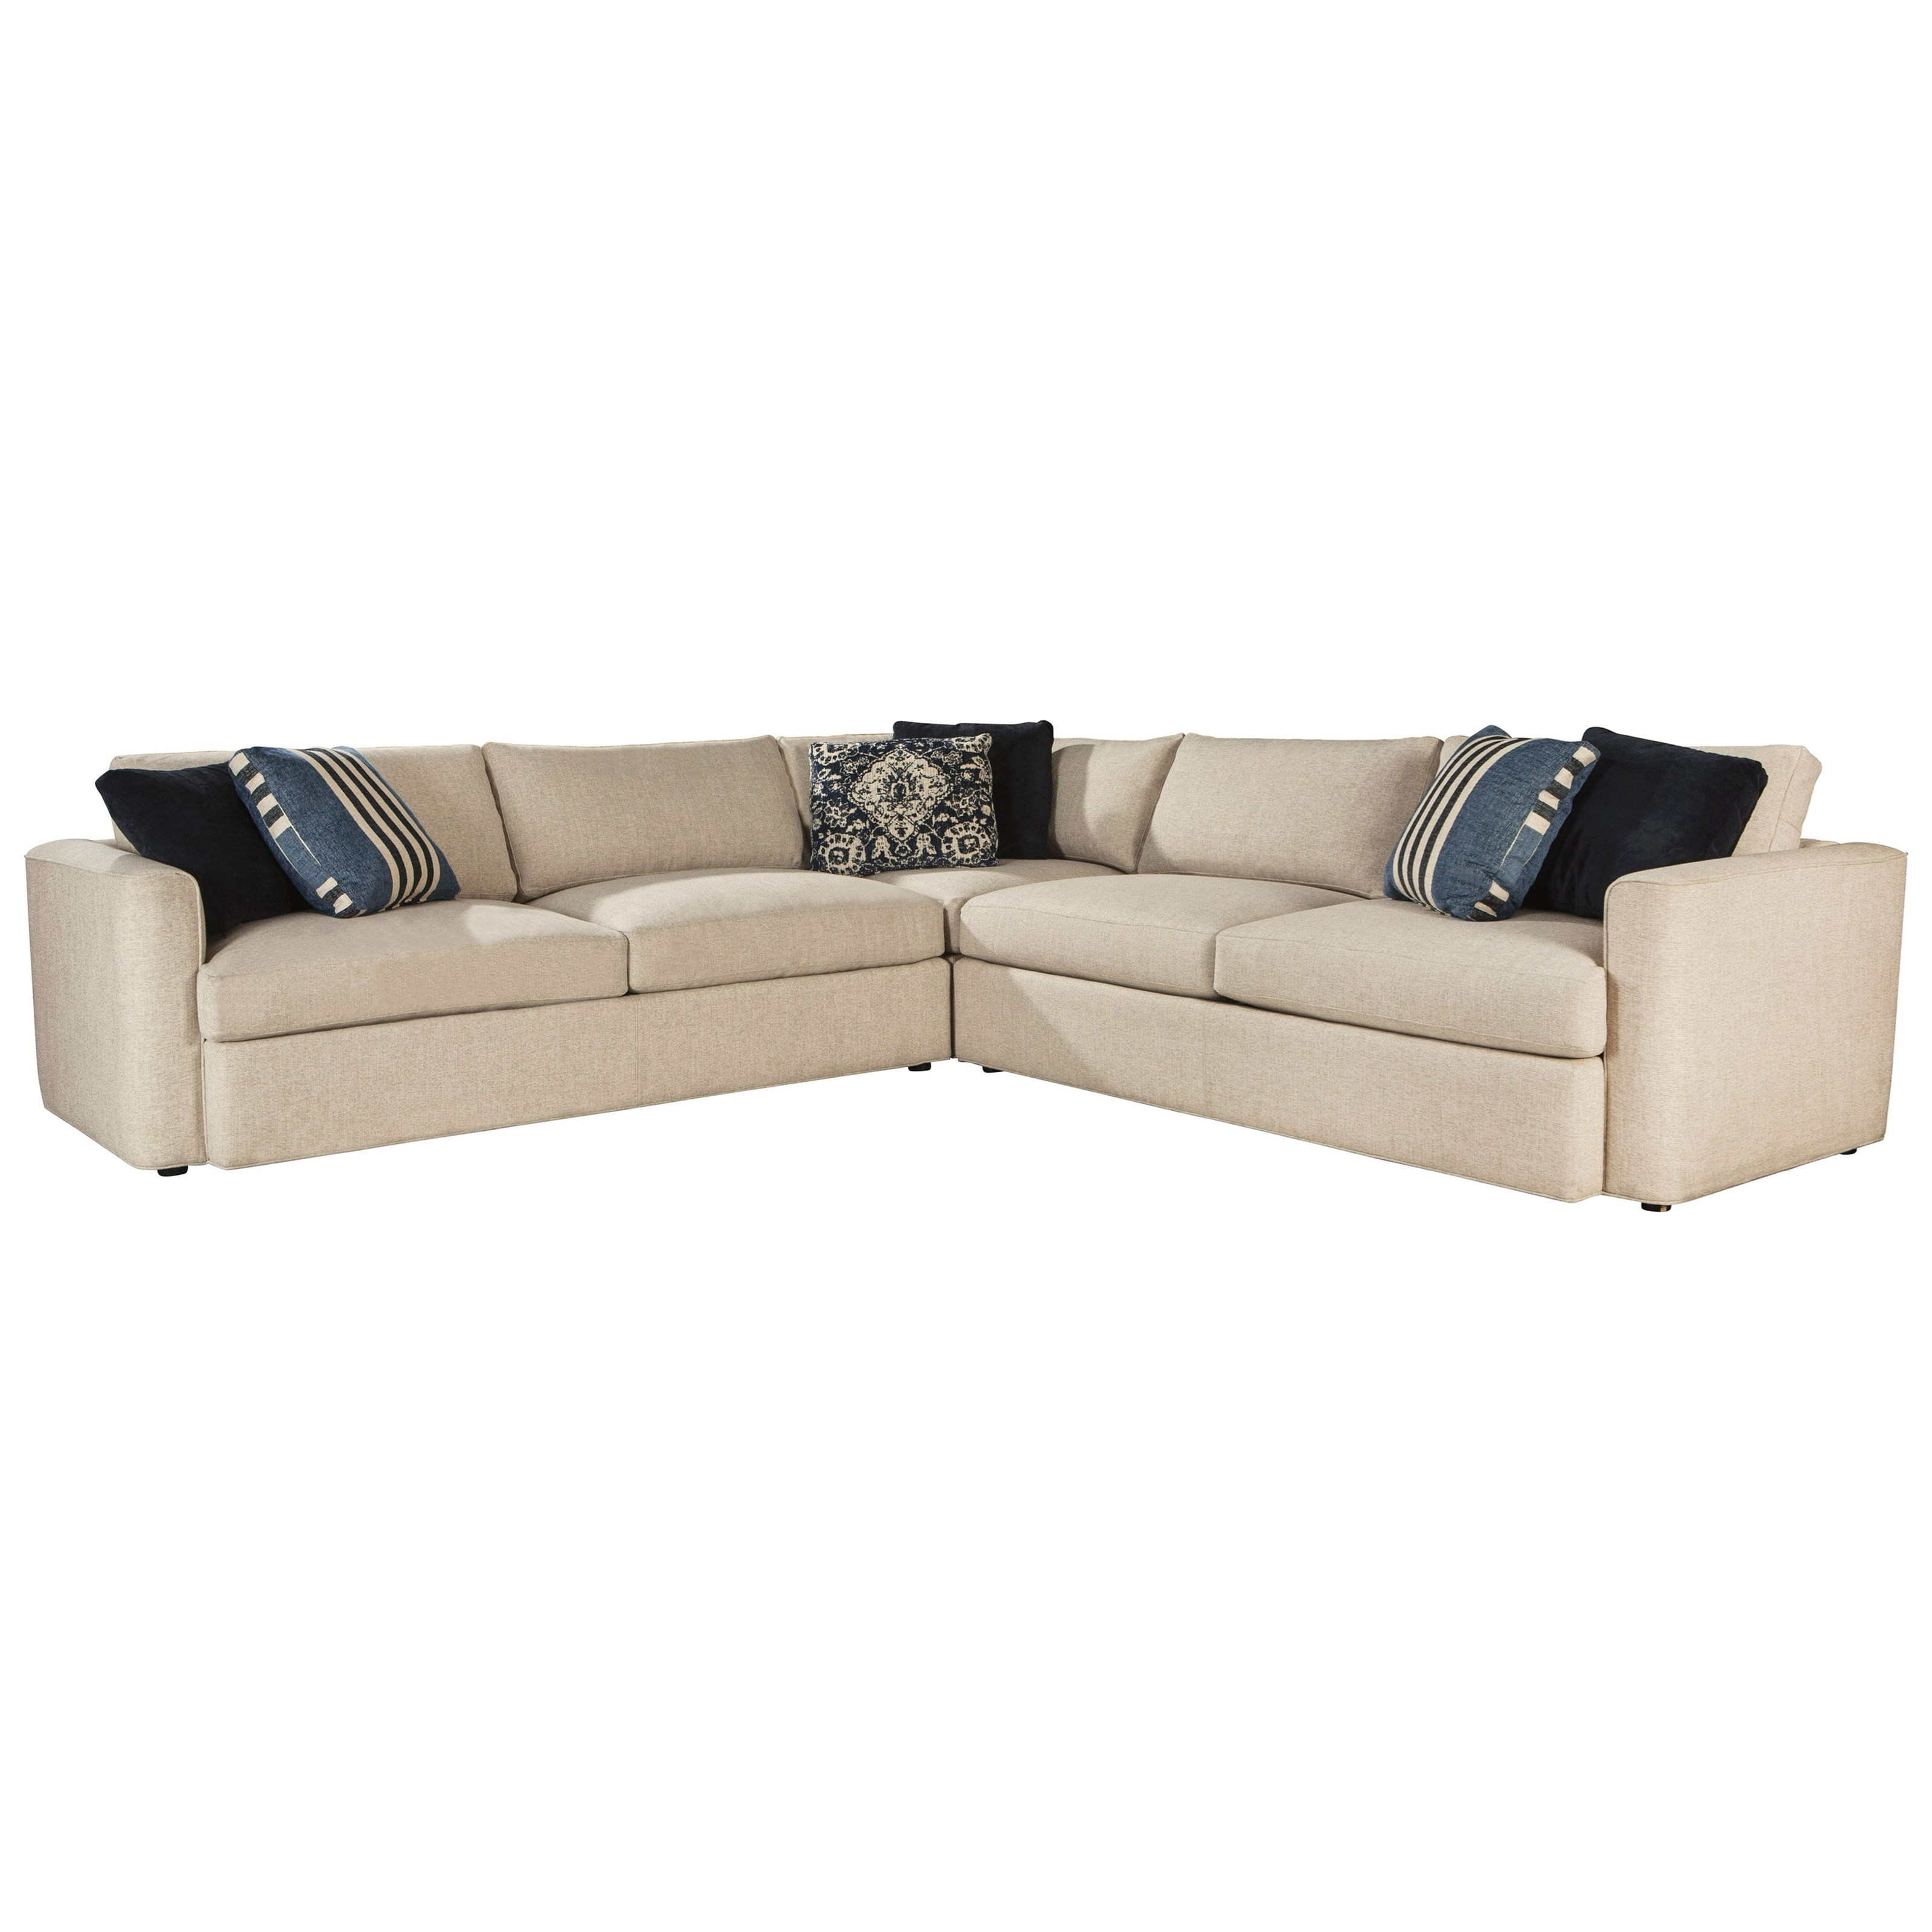 ED Ellen DeGeneres Crafted by Thomasville   Ladera Sectional - Item Number: 2650-L24+2650-C-28+2650-R24-1925-03